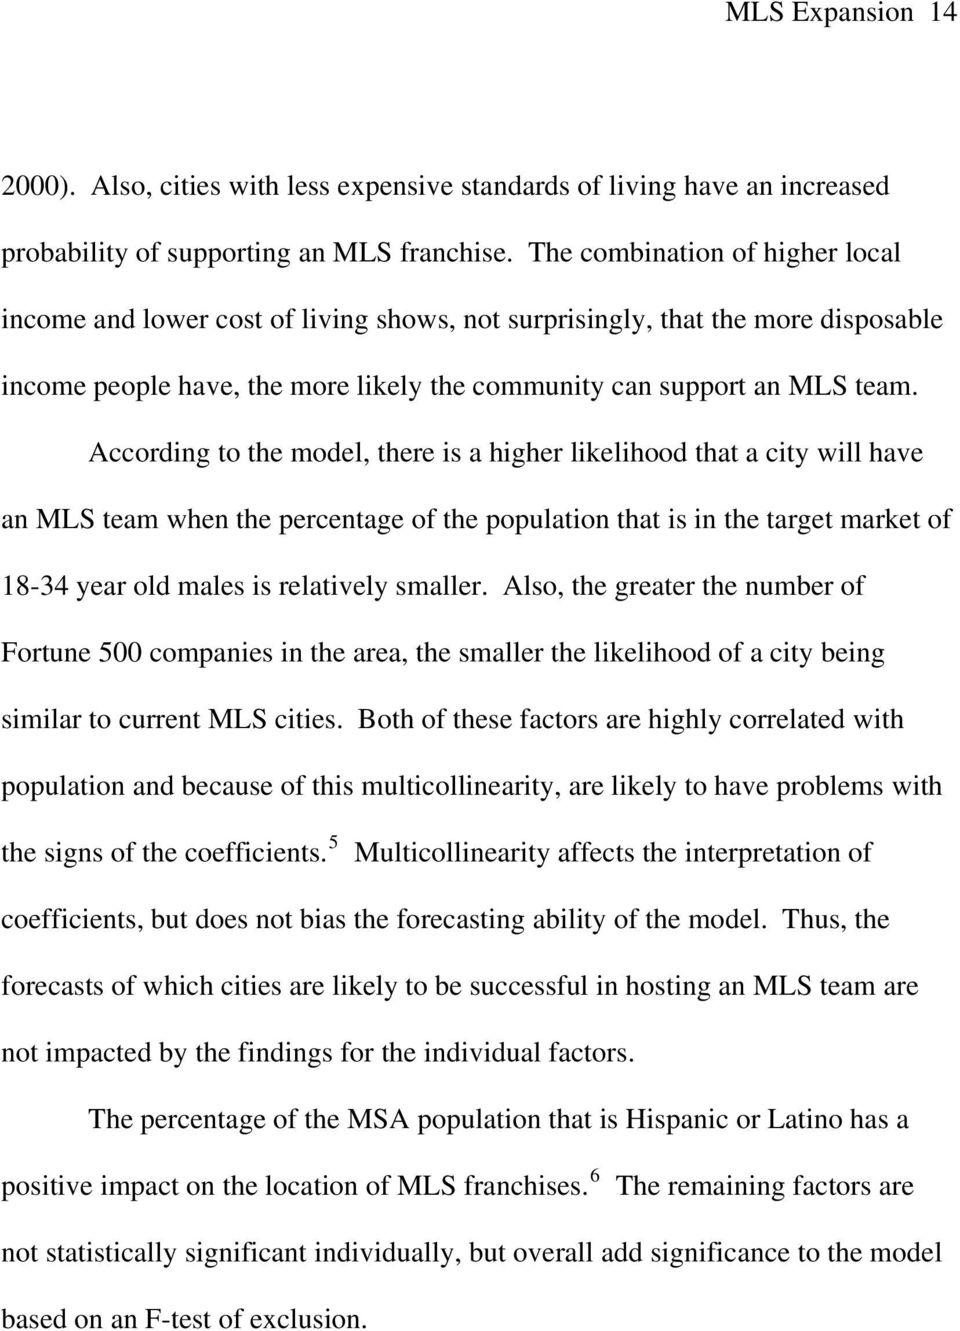 According to the model, there is a higher likelihood that a city will have an MLS team when the percentage of the population that is in the target market of 18-34 year old males is relatively smaller.